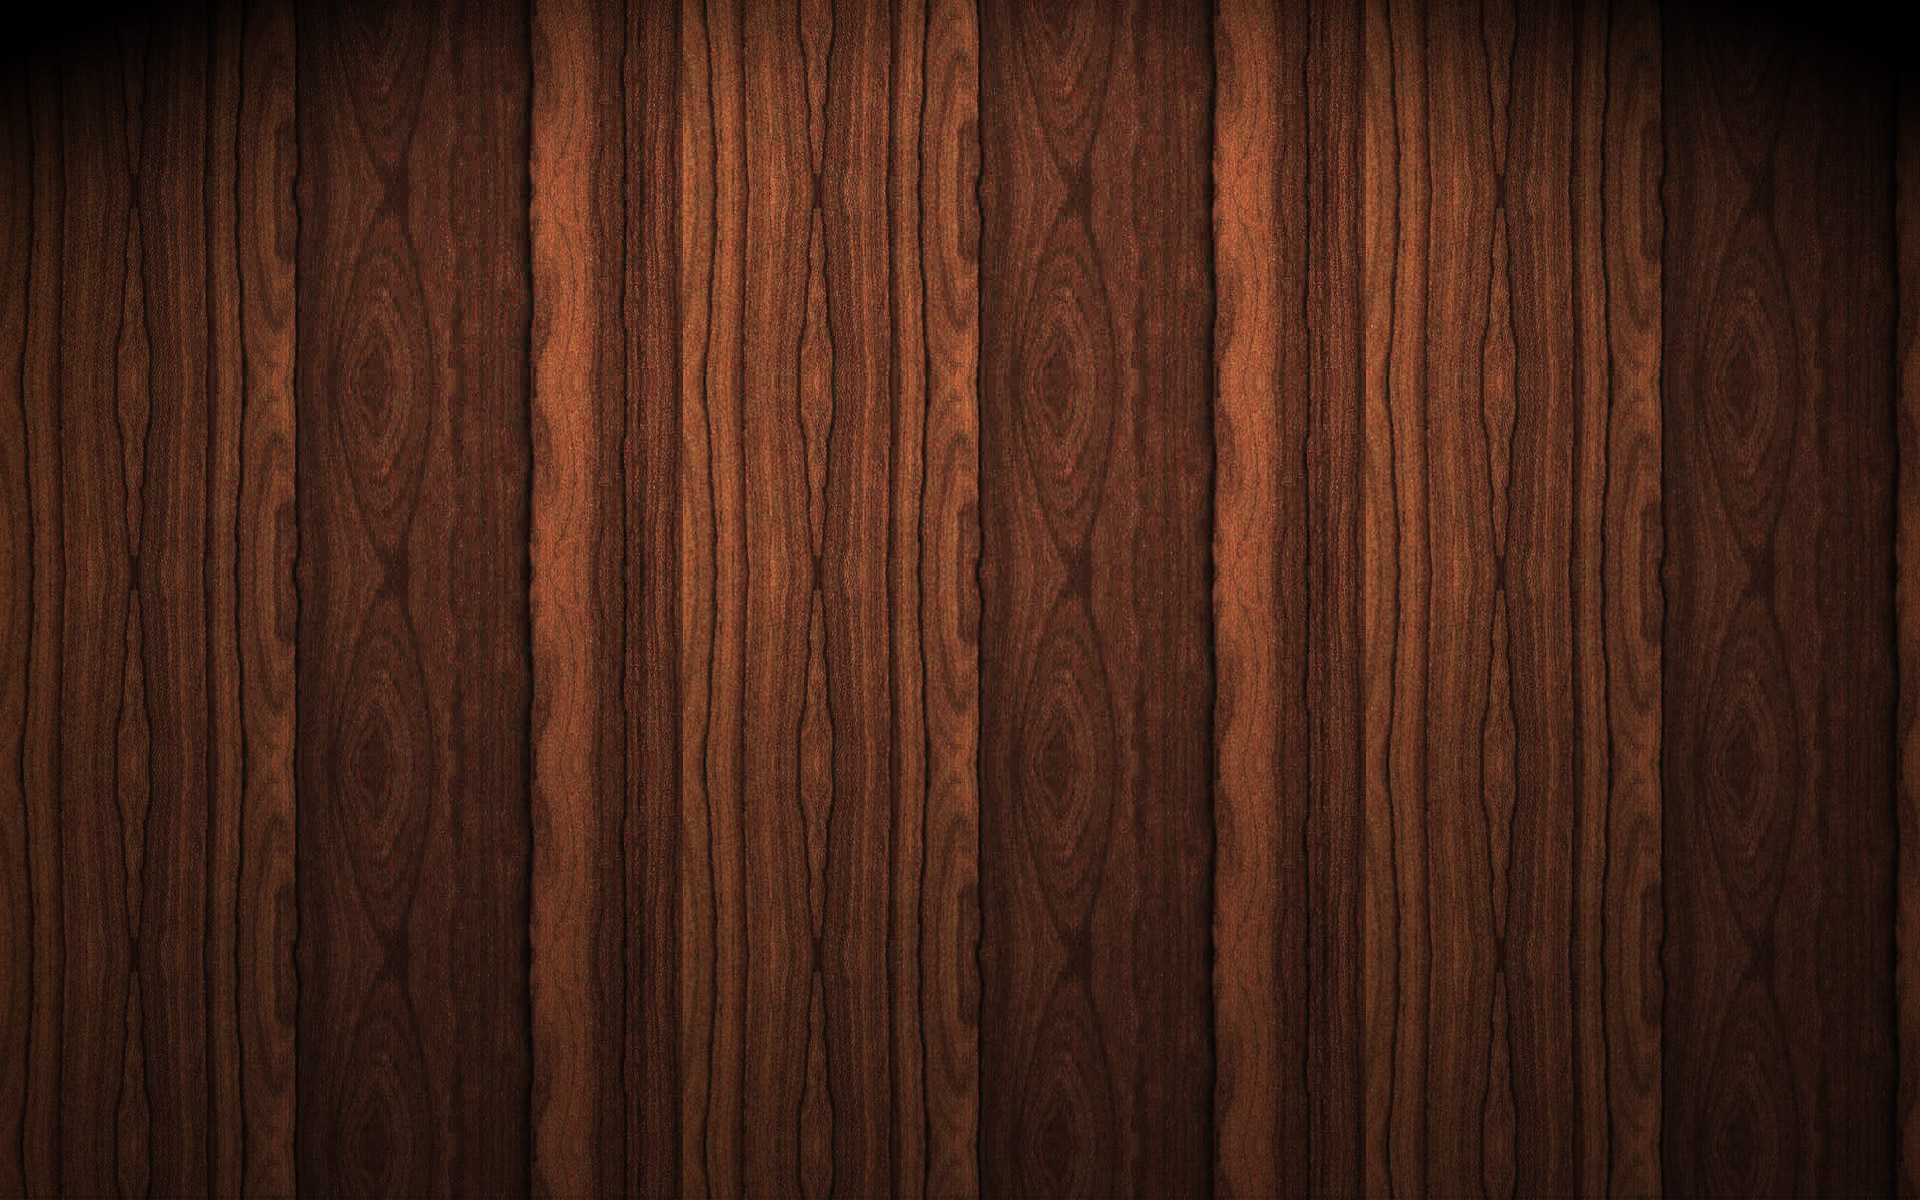 textures wood texture wallpaper 1920x1200 11397